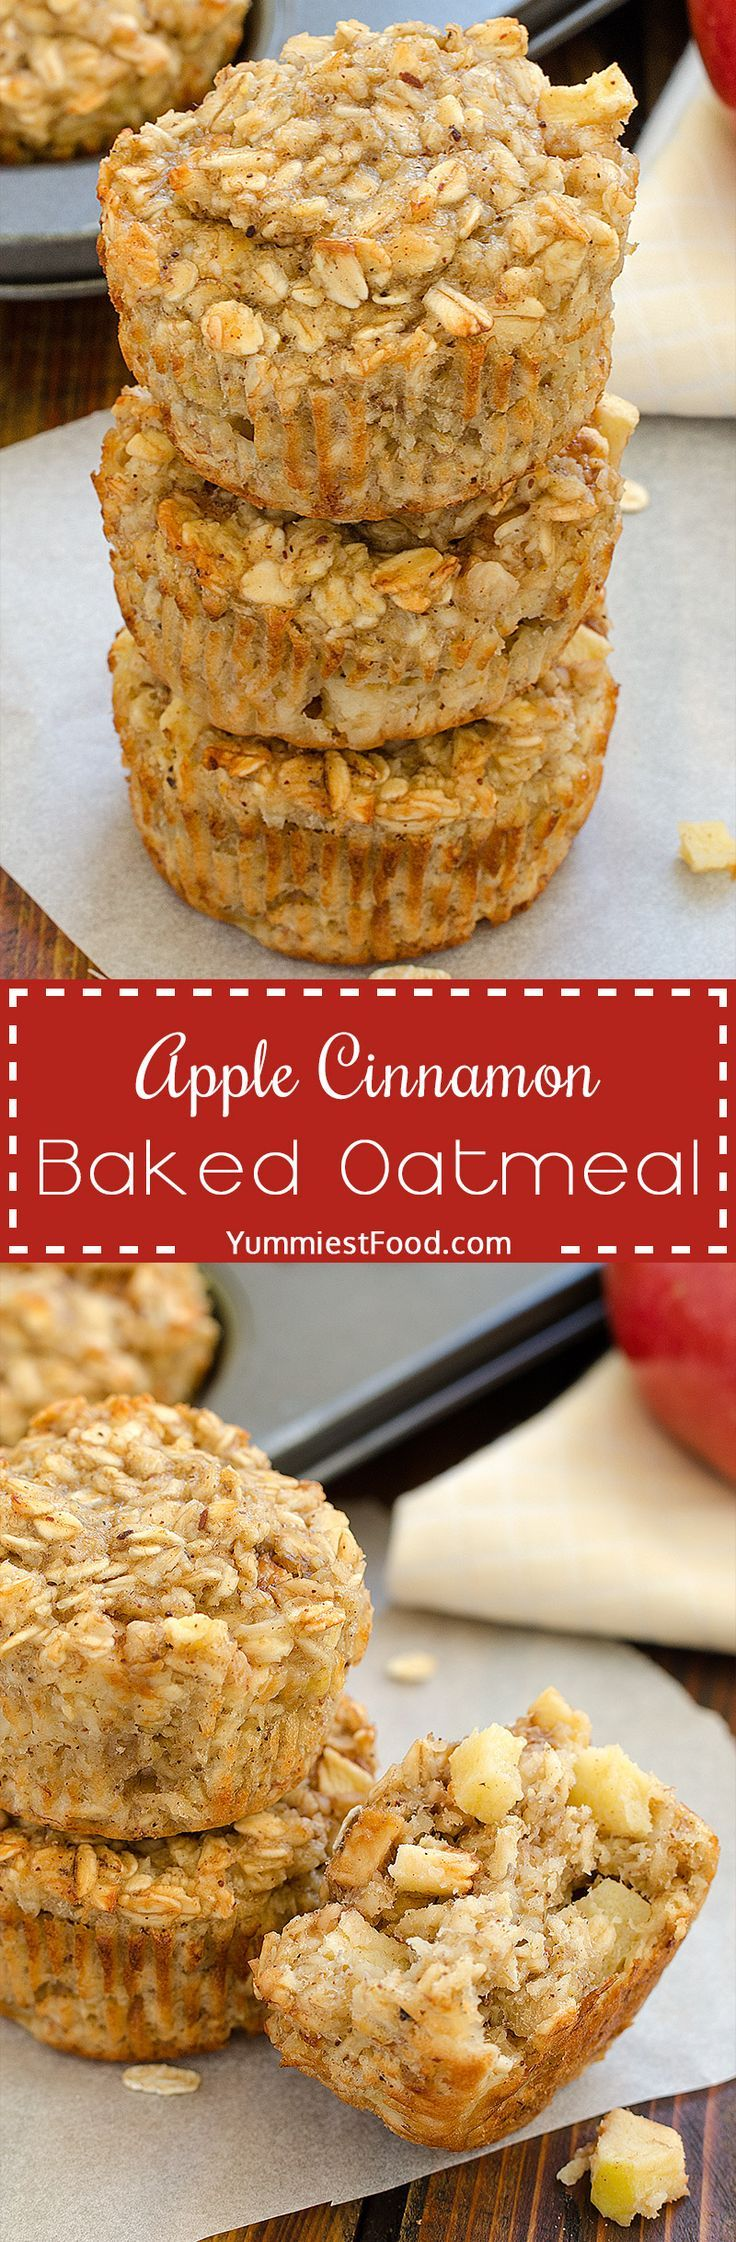 Apple Cinnamon Baked Oatmeal - moist, delicious, healthy, gluten free breakfast, perfect way to start your day! Apple Cinnamon Baked Oatmeal is the best healthy snack you've ever tried! (Healthy Muffin For Kids)